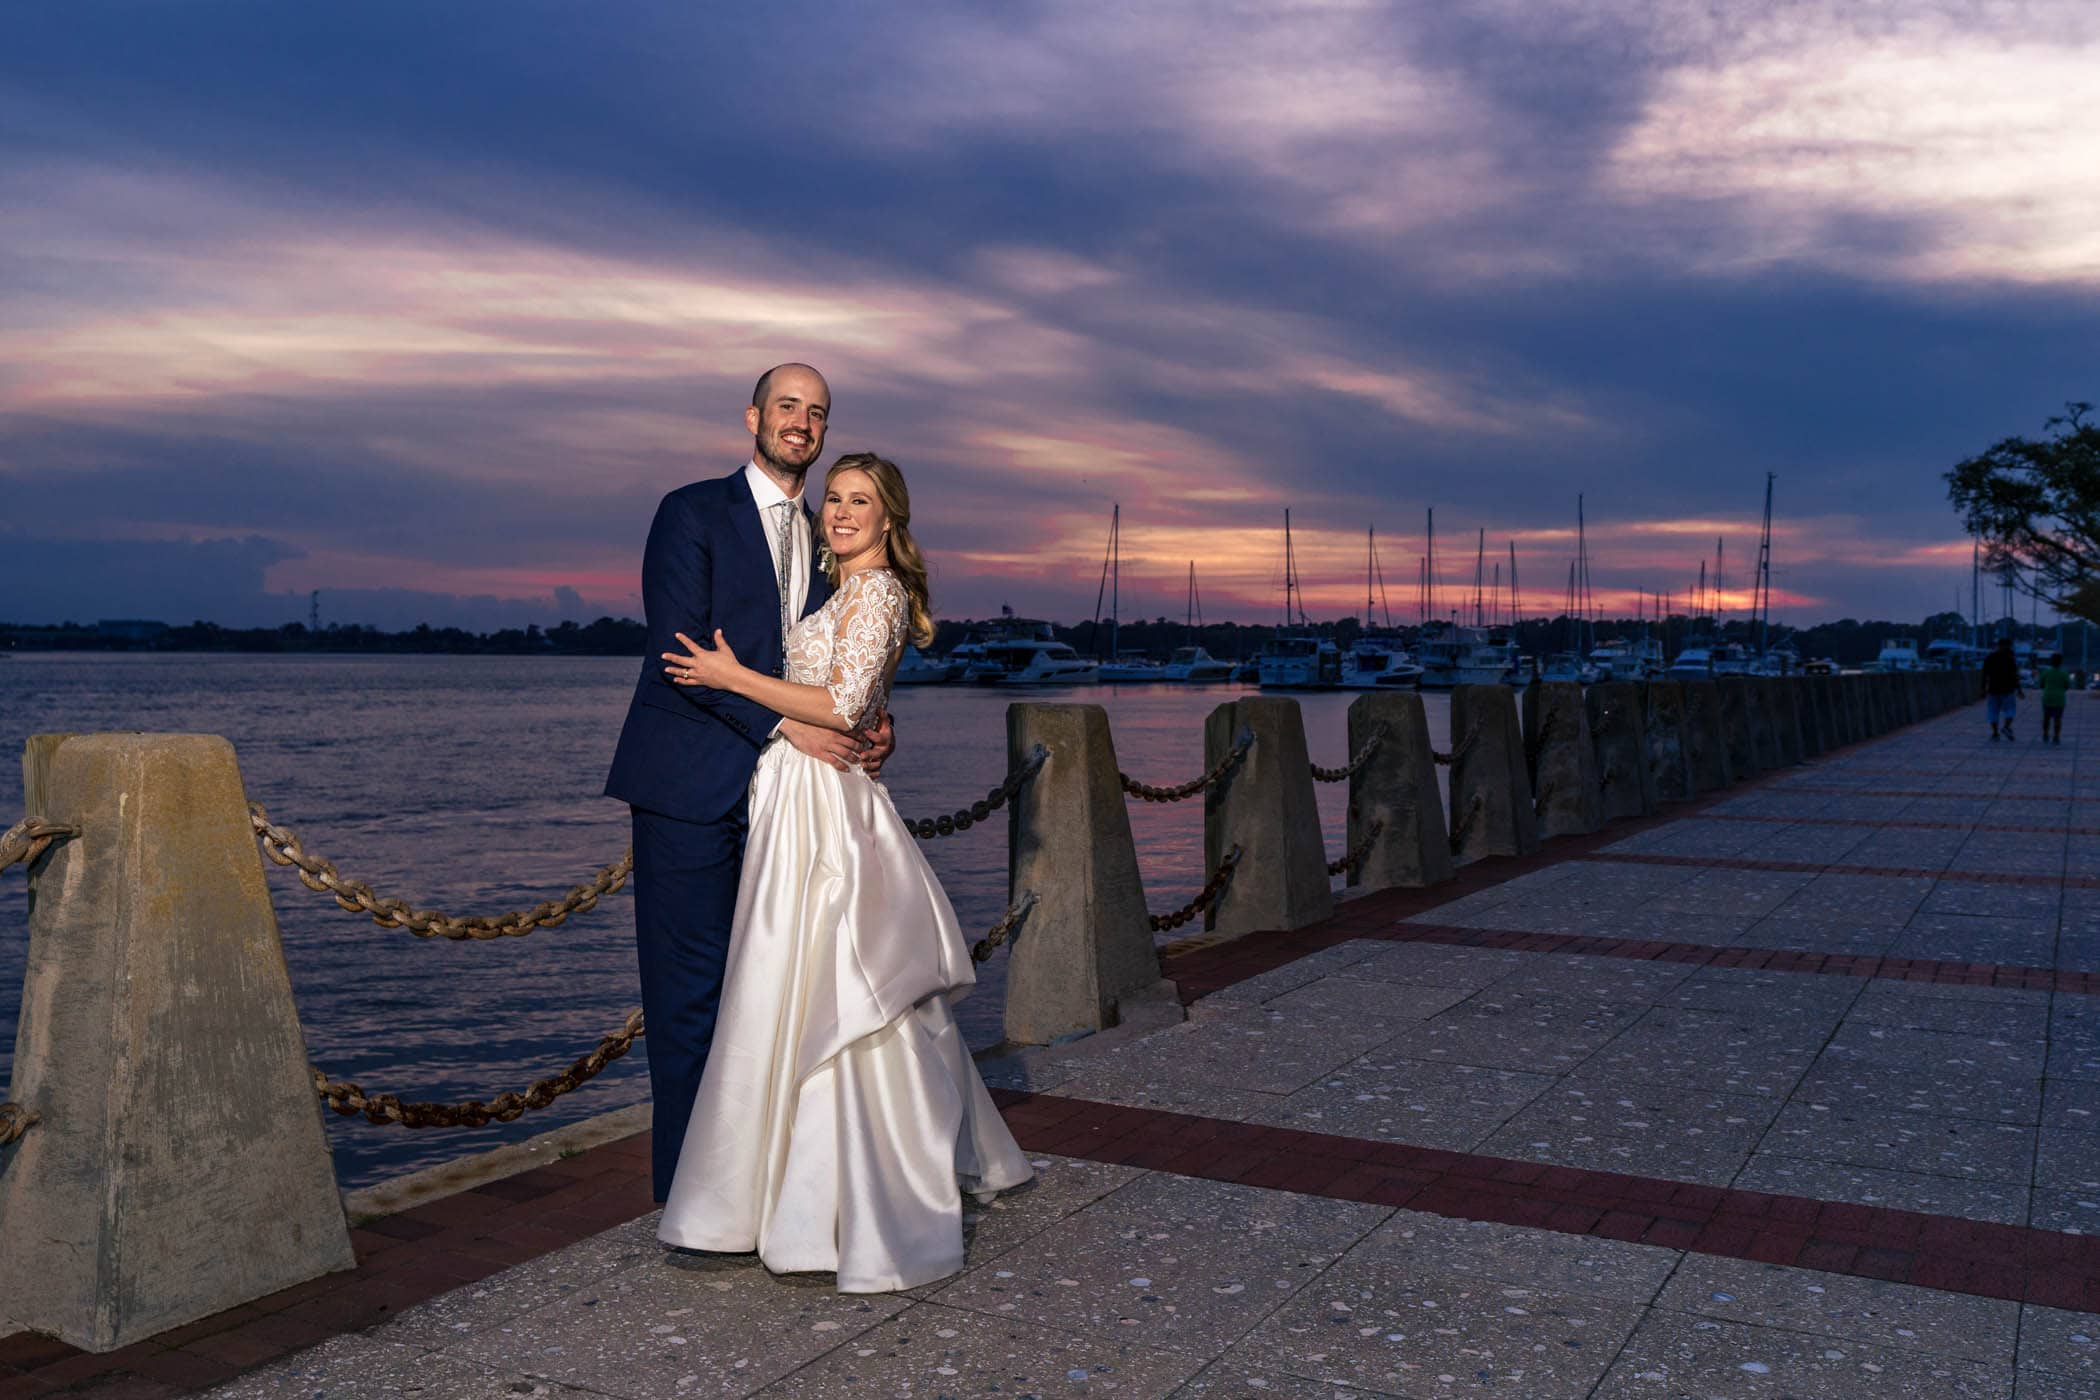 Beaufort Wedding, Bride and Groom, Waterfront Park, Sunset